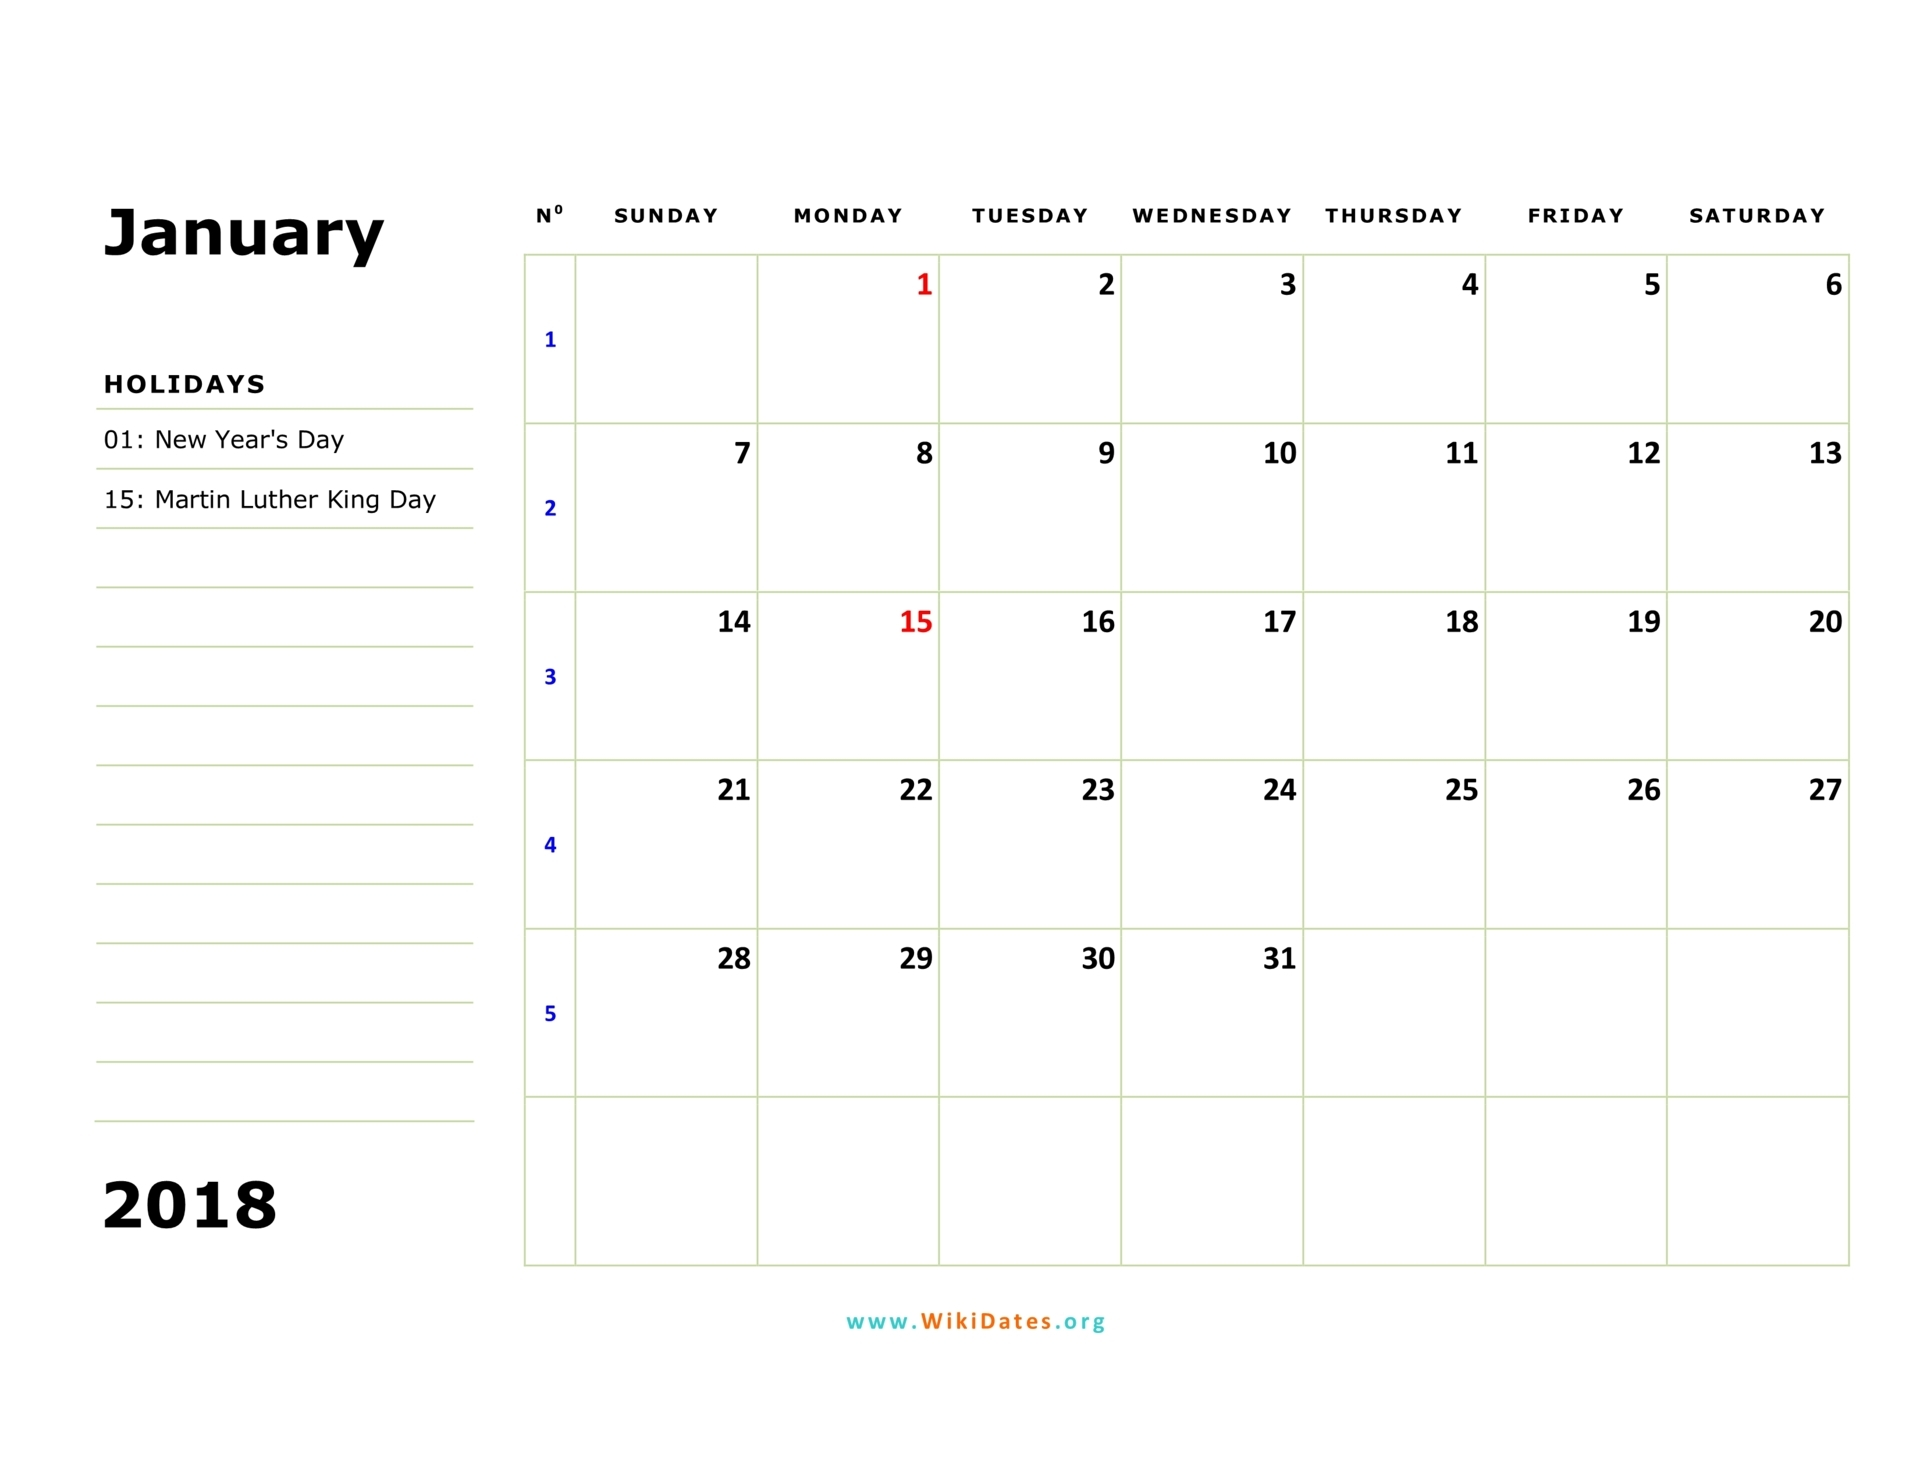 january 2018 calendar sunday 02